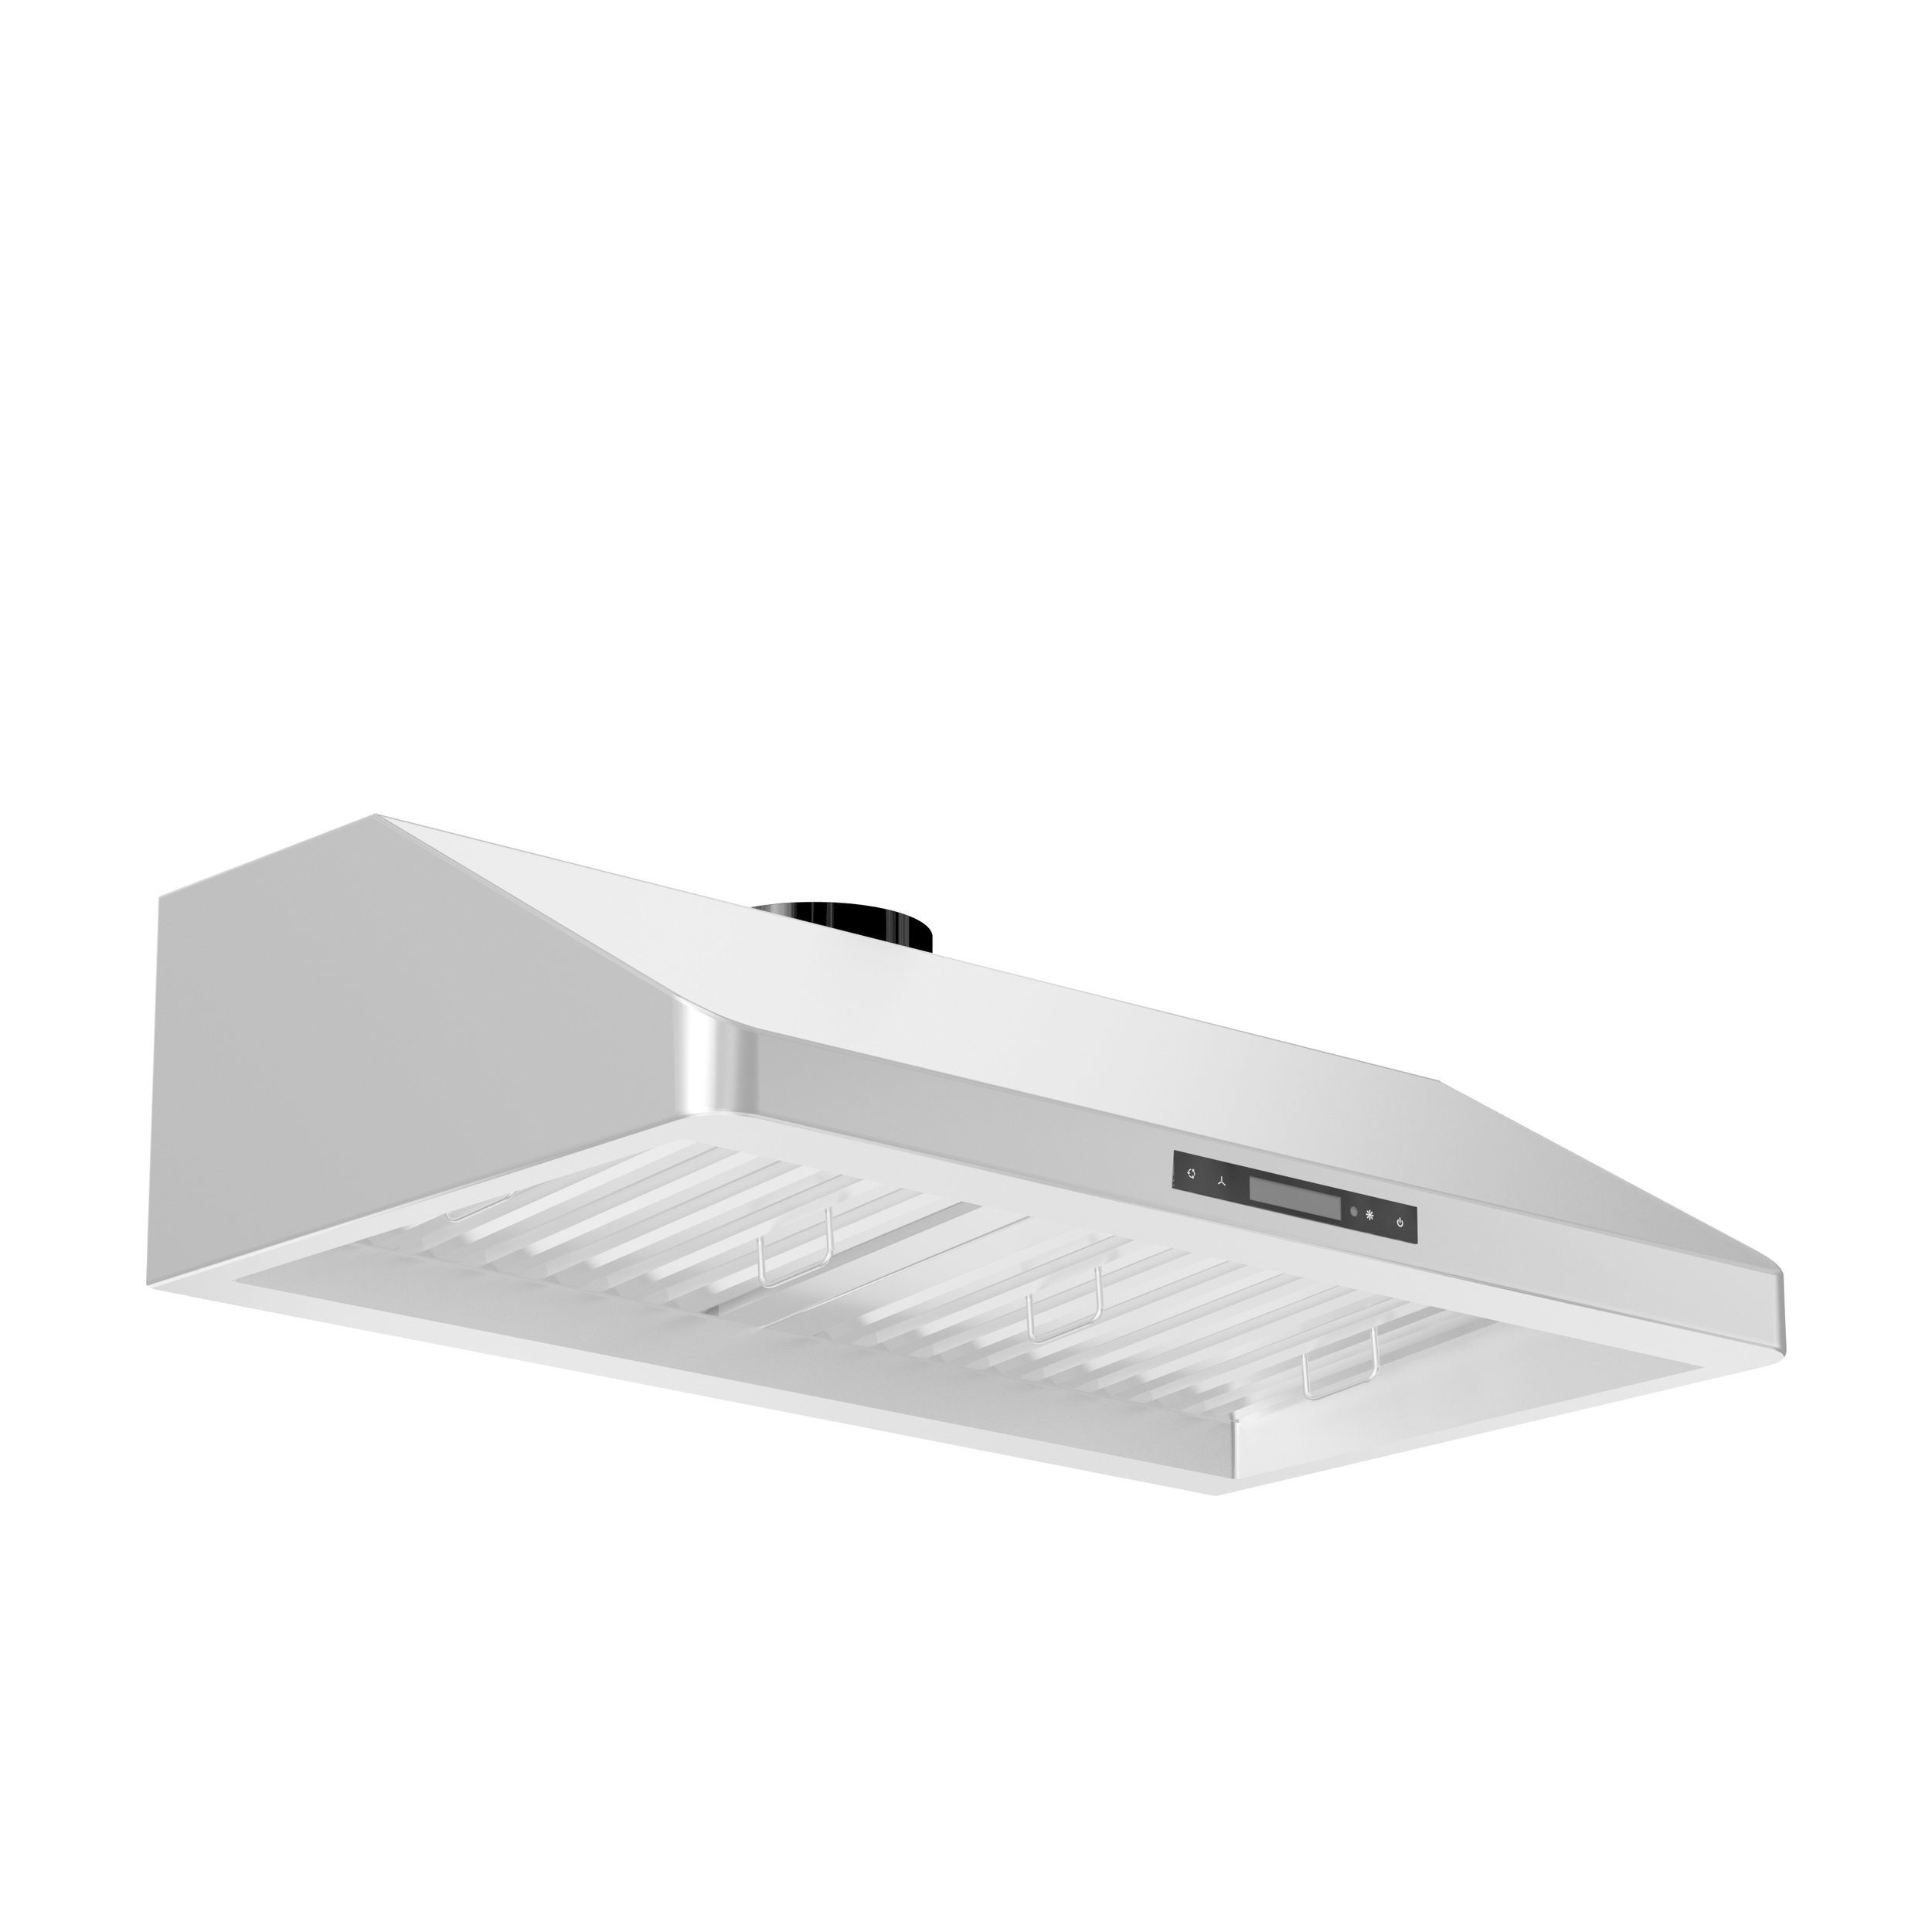 zline-stainless-steel-under-cabinet-range-hood-619-side-under.jpeg